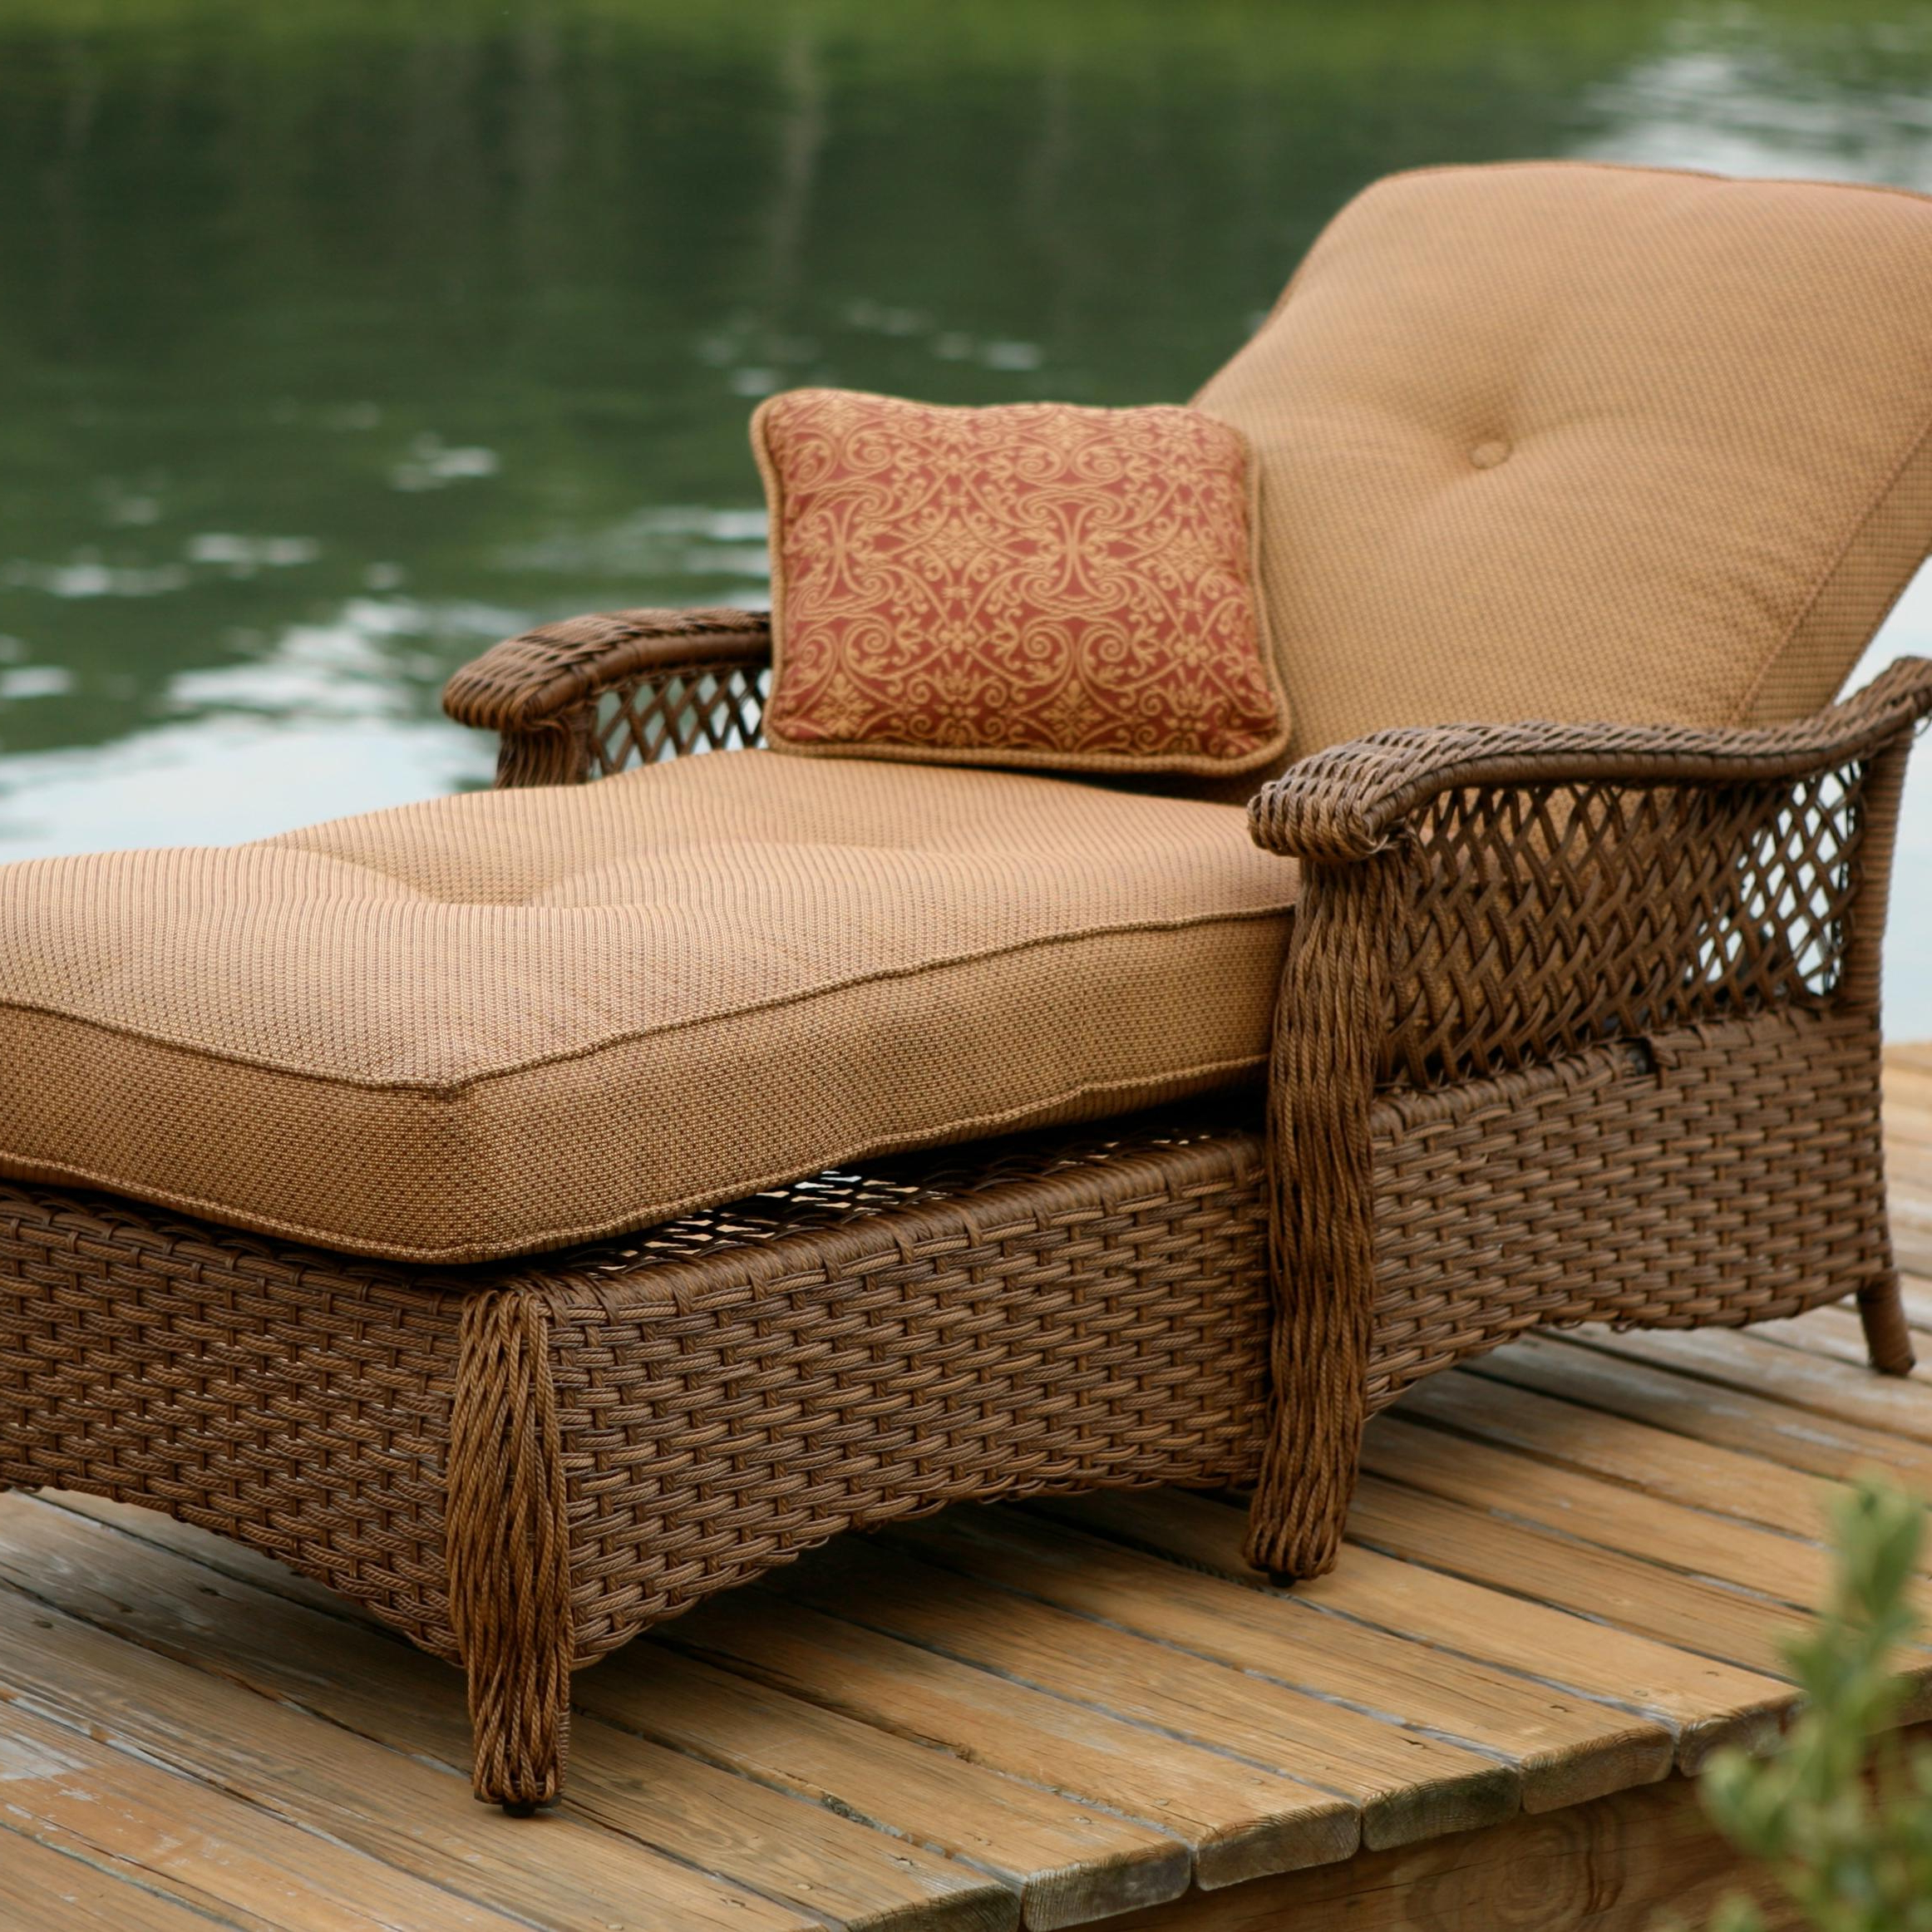 Most Recent Agio Veranda–agio Outdoor Tan Woven Chaise Lounge Chair Inside Resin Wicker Multi Position Double Patio Chaise Lounges (View 16 of 25)